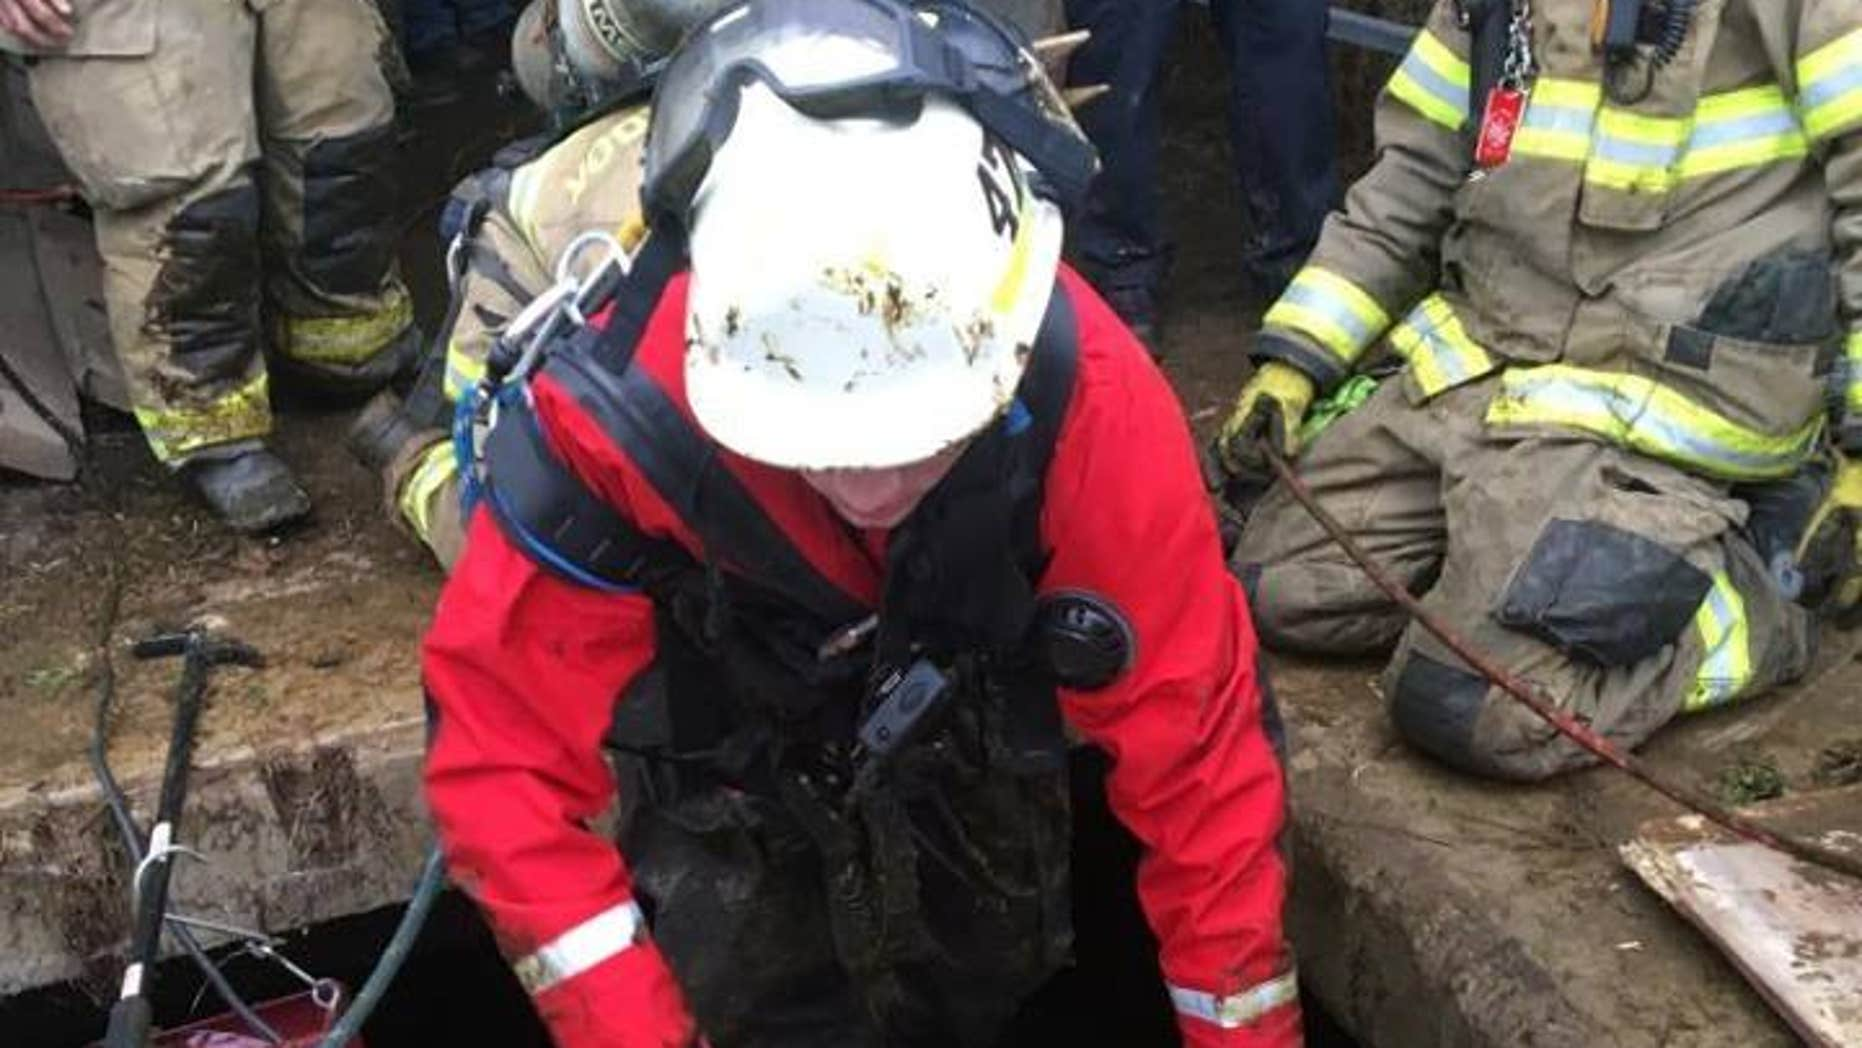 A Pennsylvania boy was rescued after falling into a manure pit.